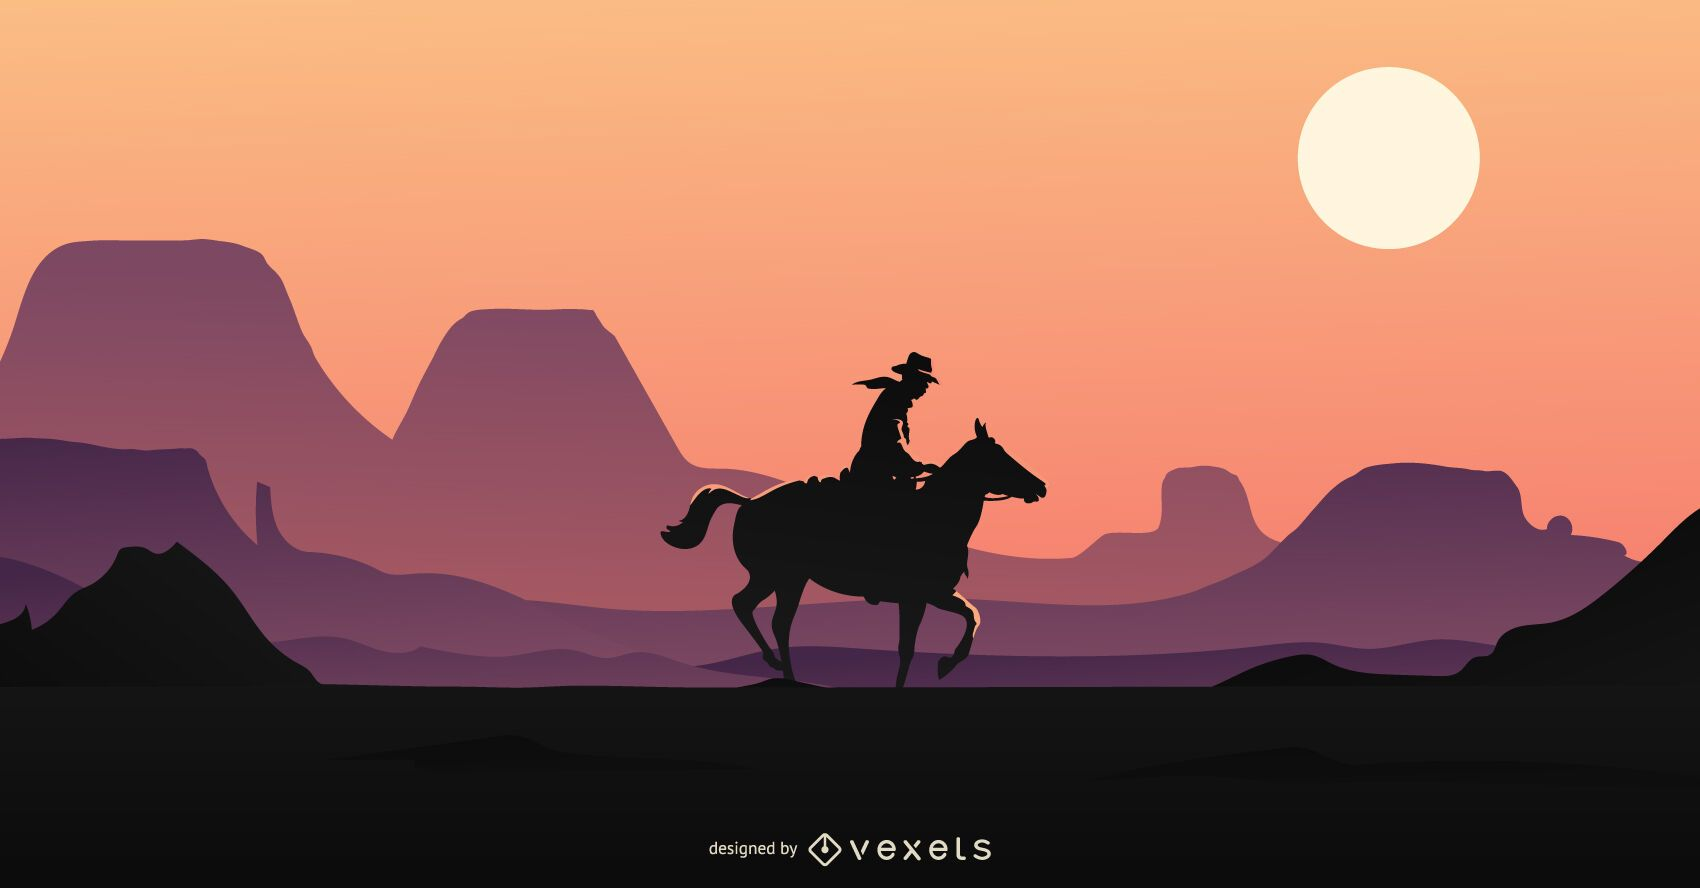 Cowboy in horse profile riding background